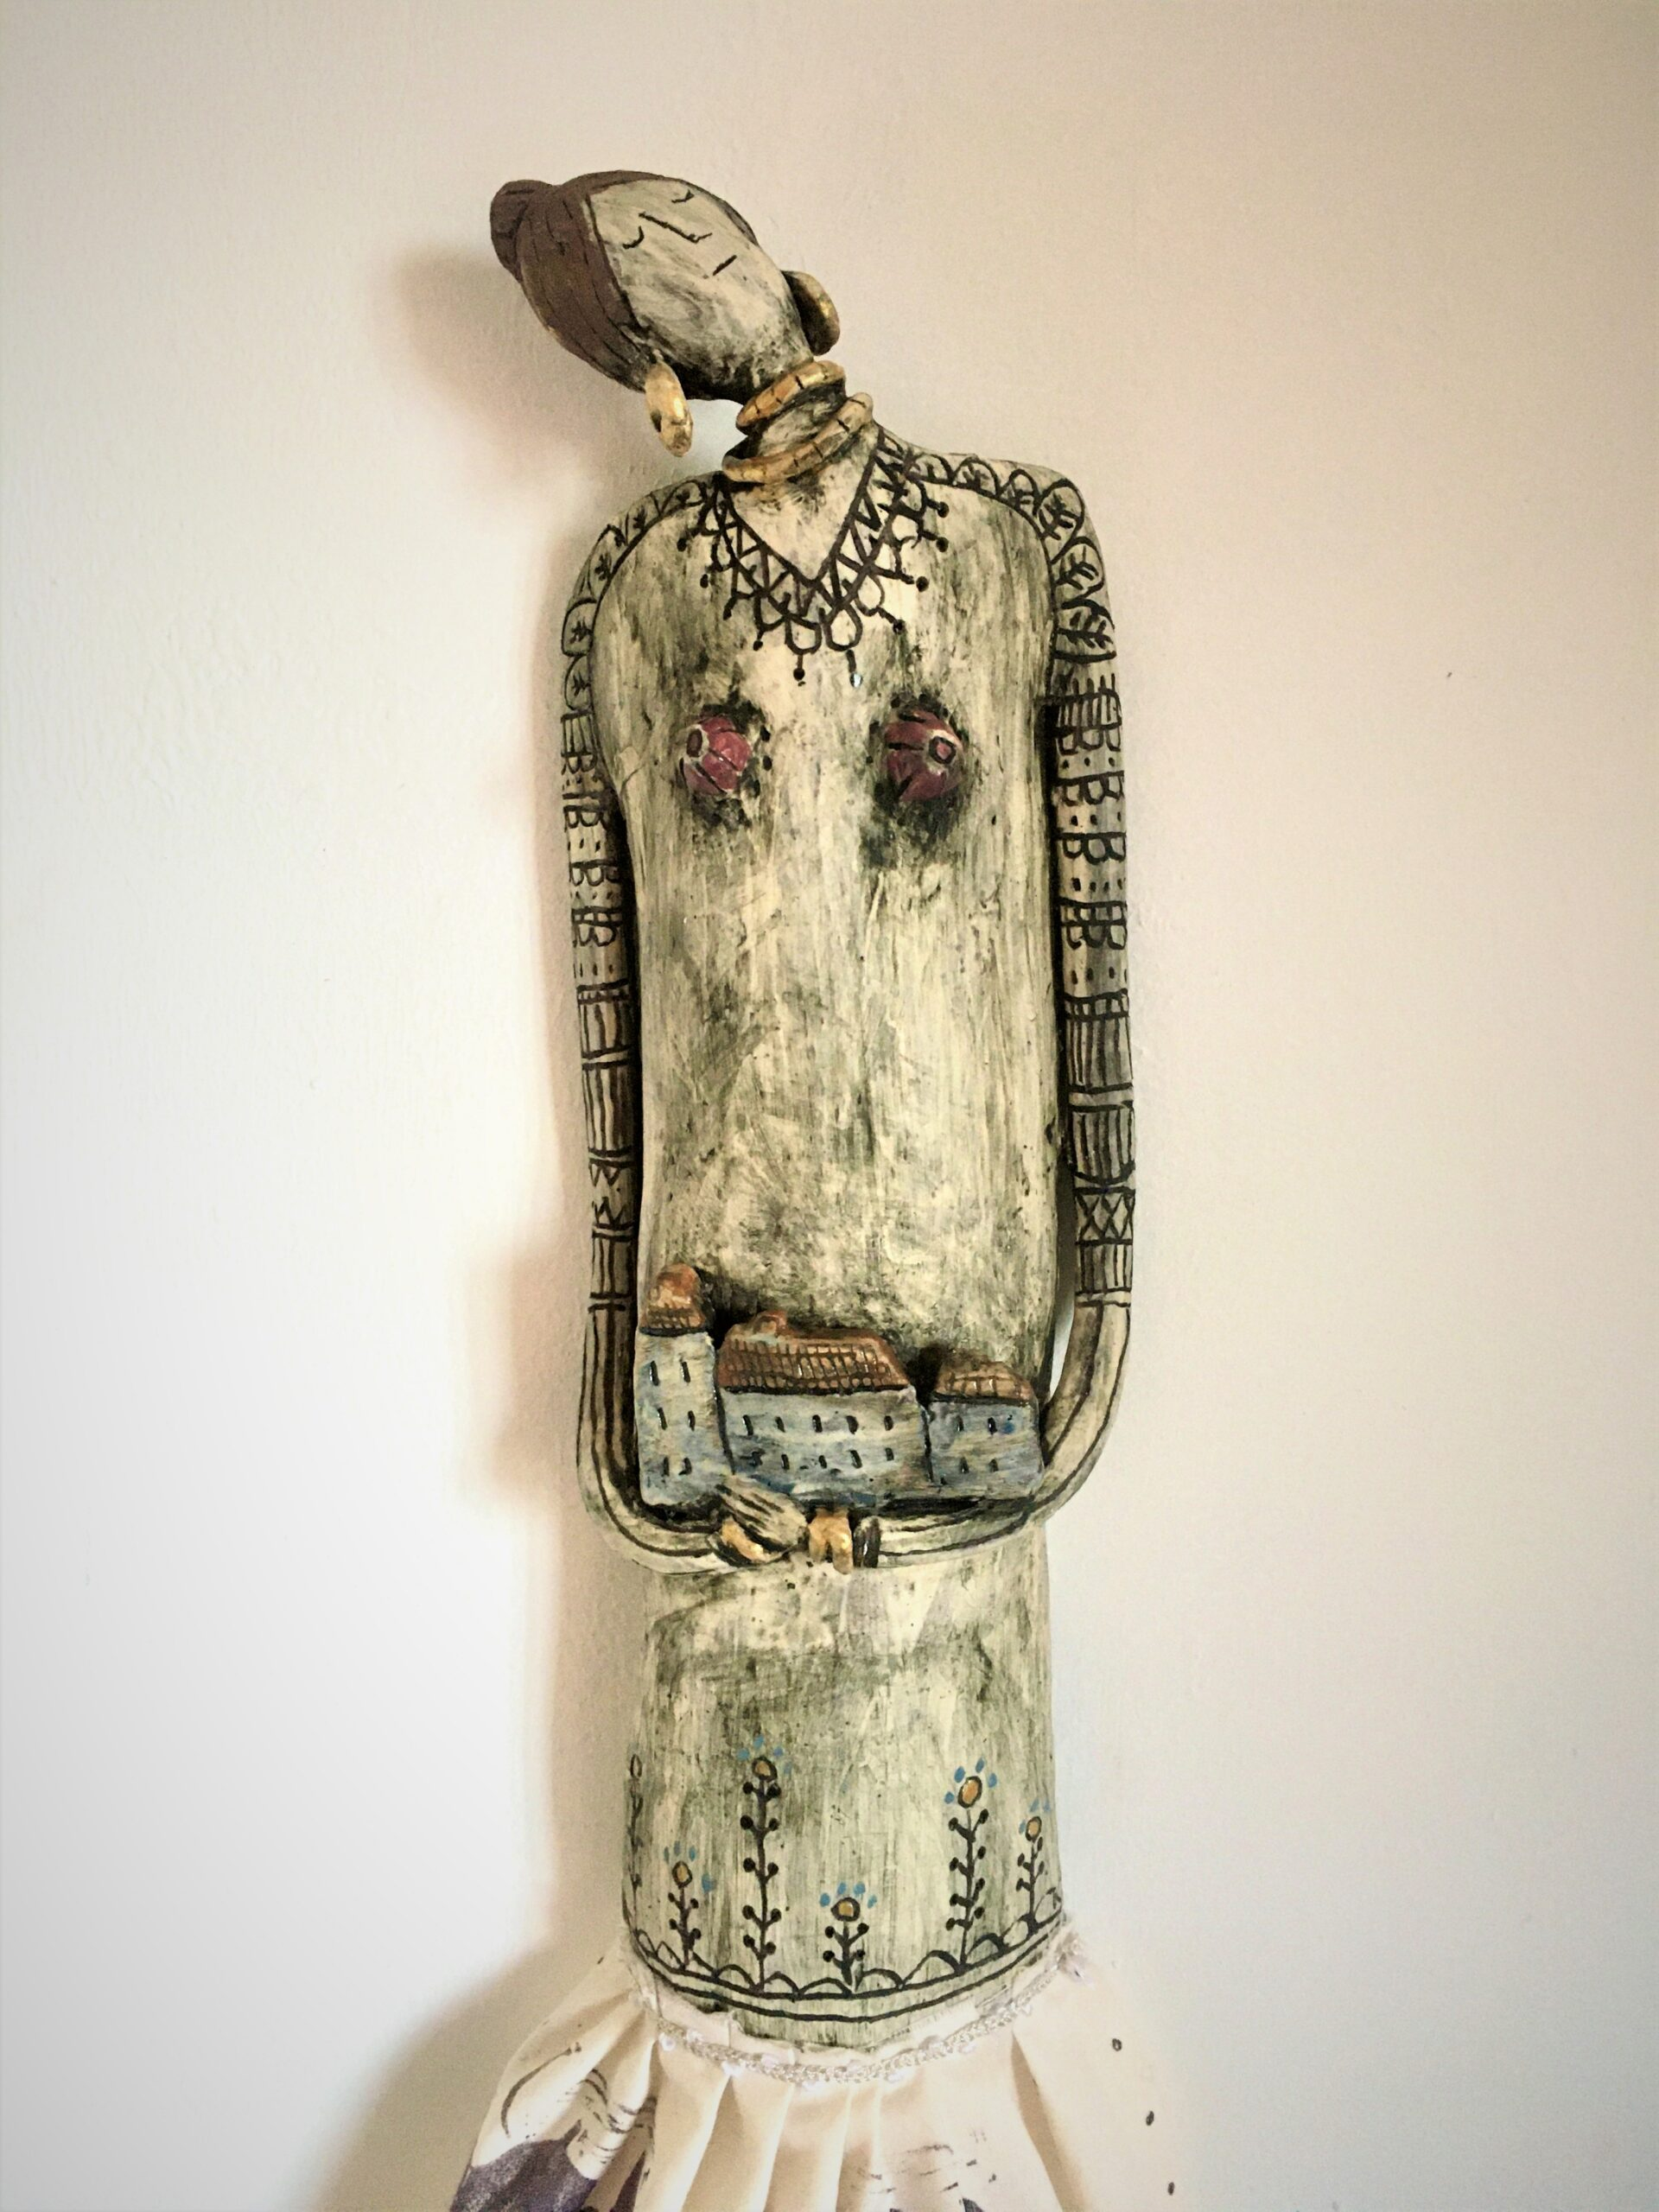 Kira O Brien You And Me Equals Home Large Ceramic and Handprinted Lino Print on Textile Wall Doll H55cm x W14cm €650